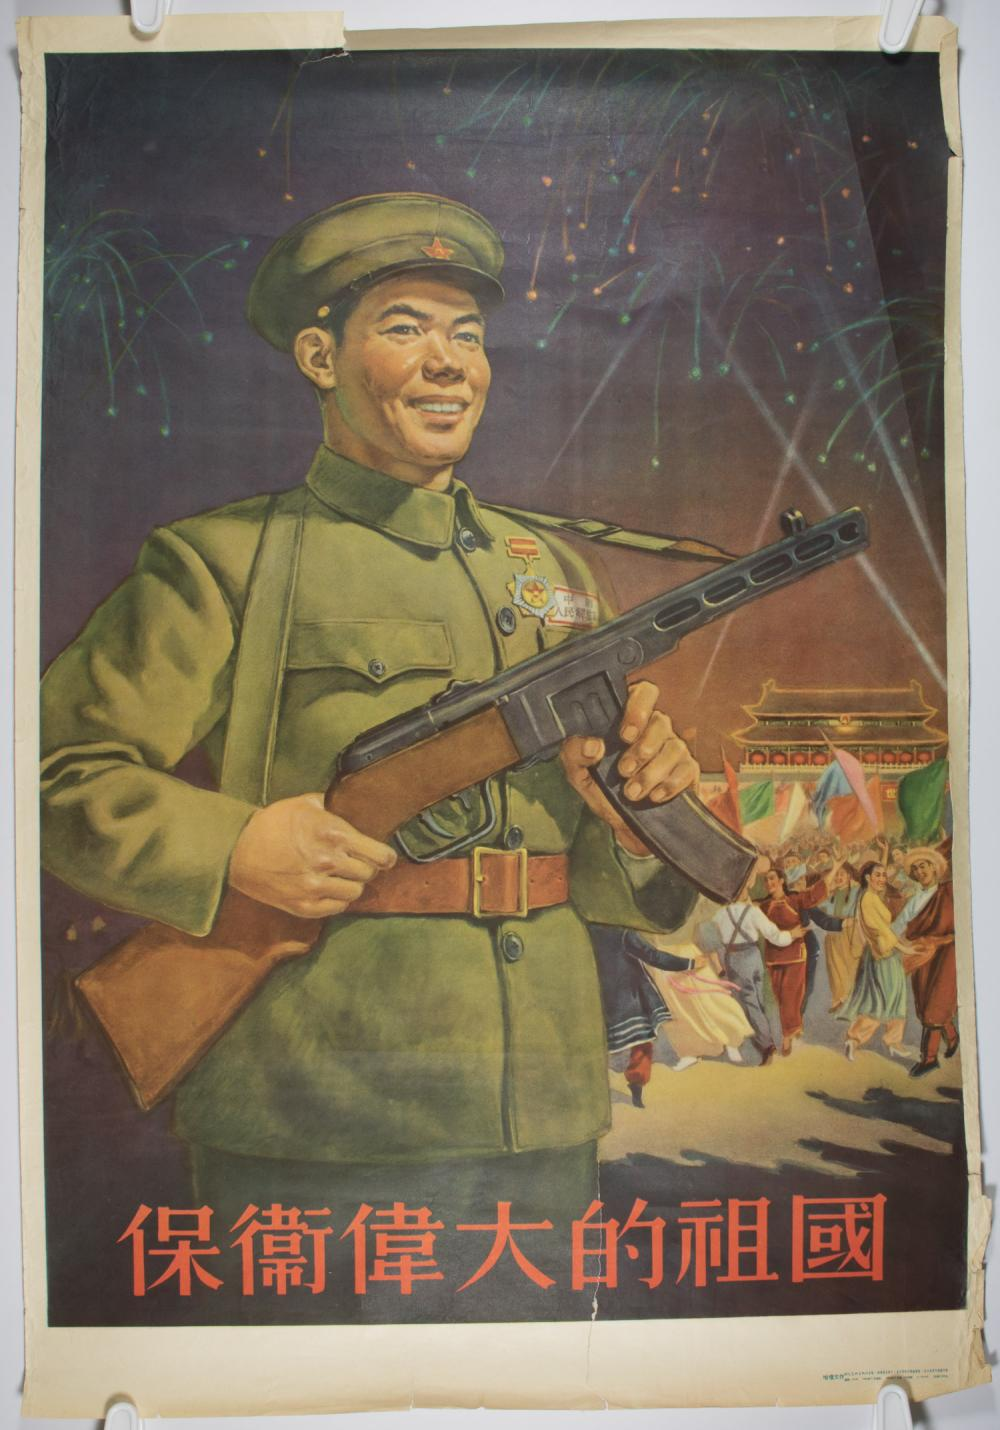 CHINESE 'DEFEND THE MOTHERLAND' POSTER